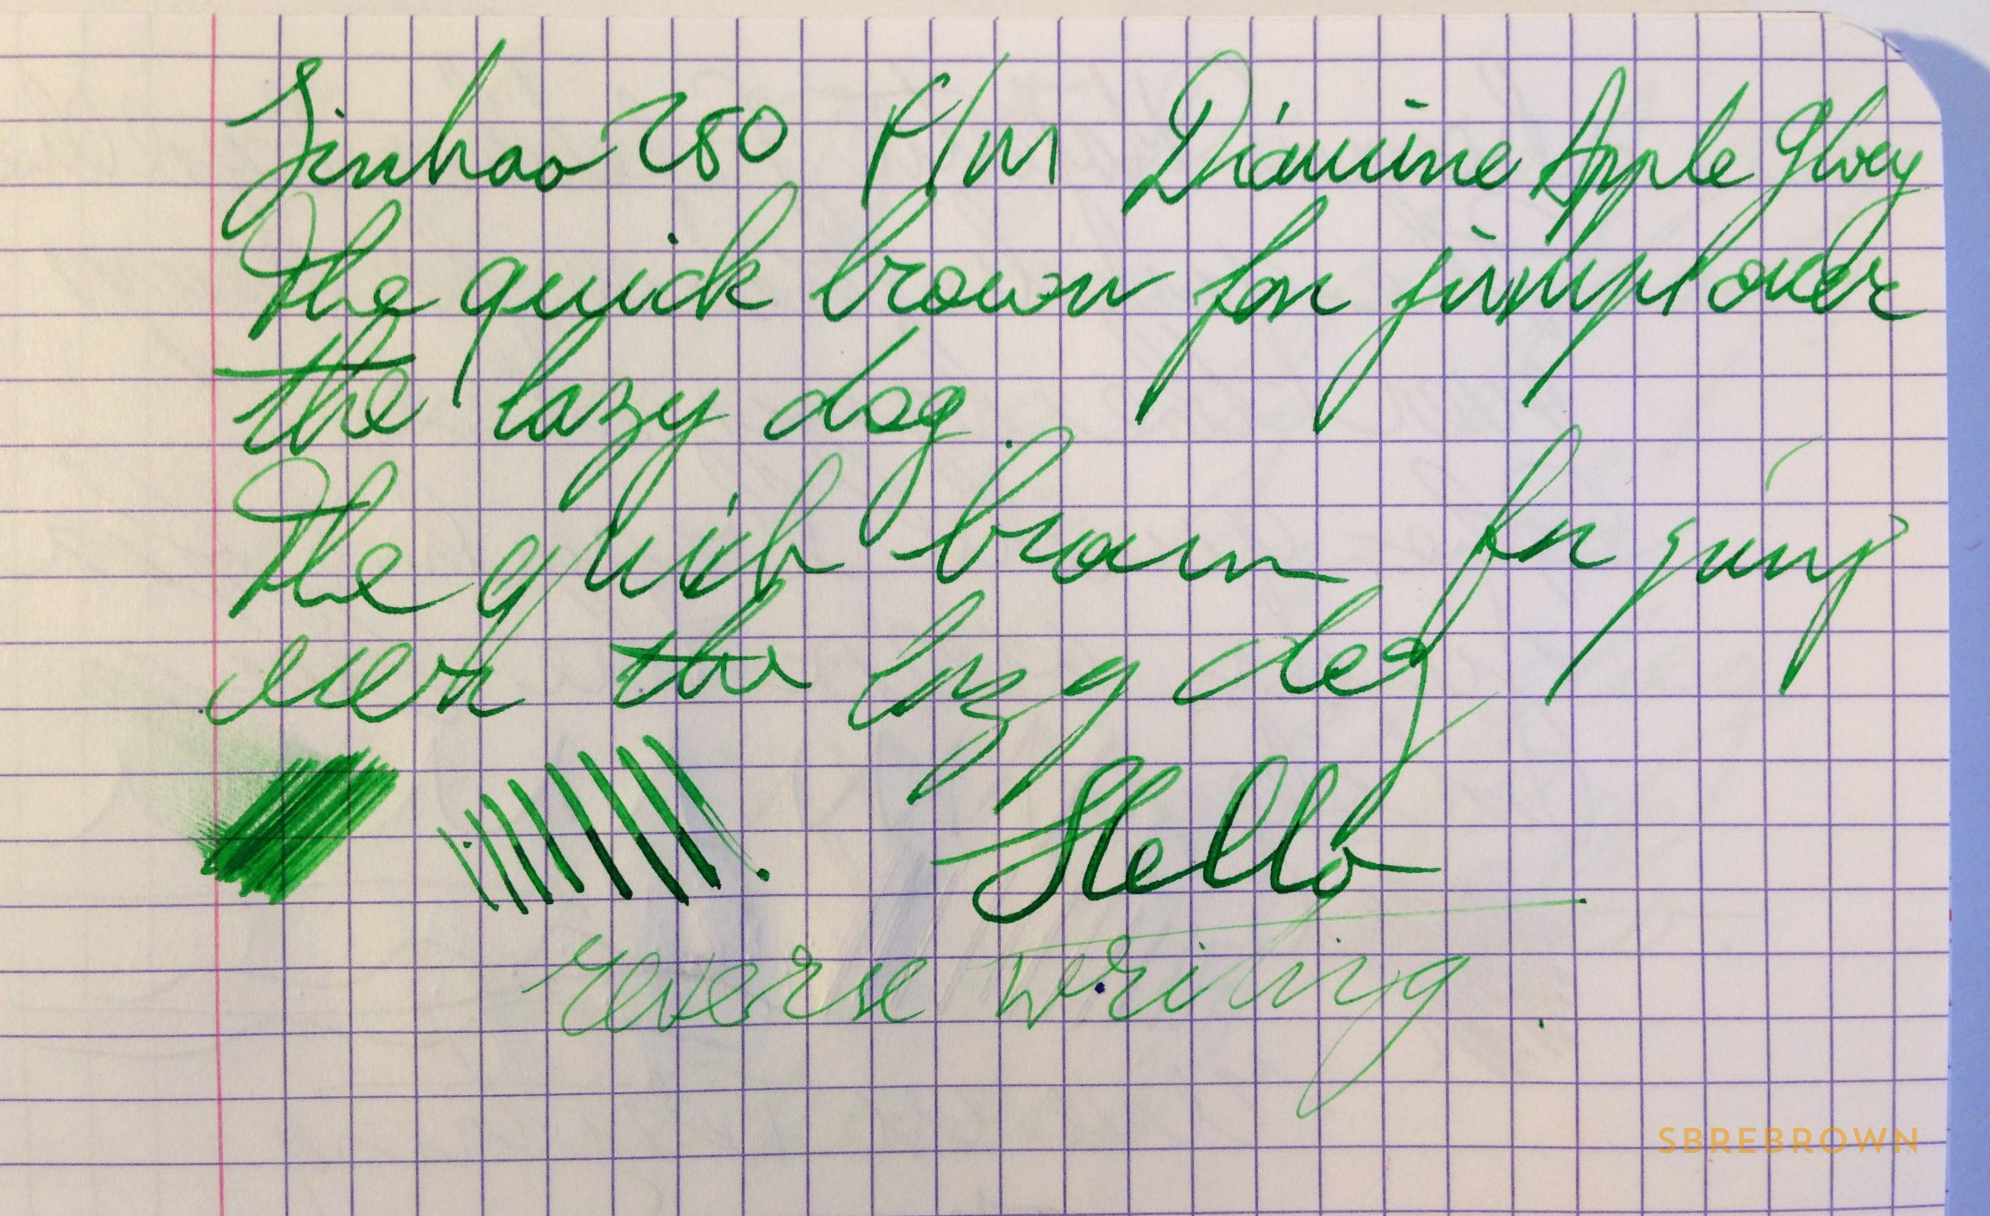 SB. Jinhao 250 FP Review (6)